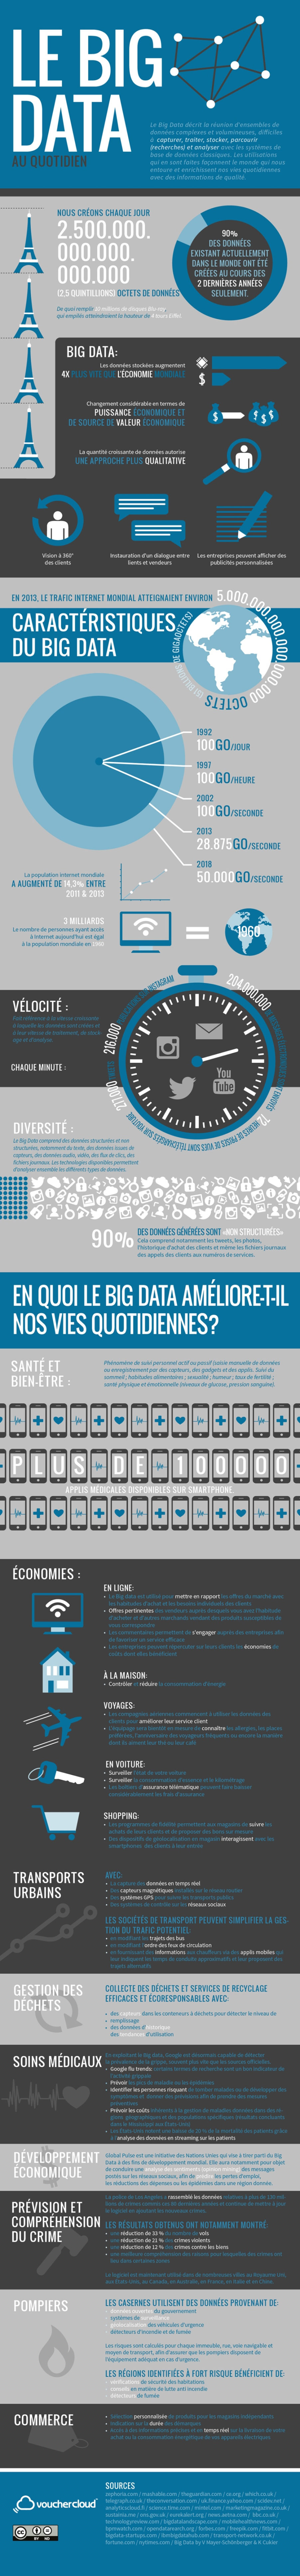 infographie big data